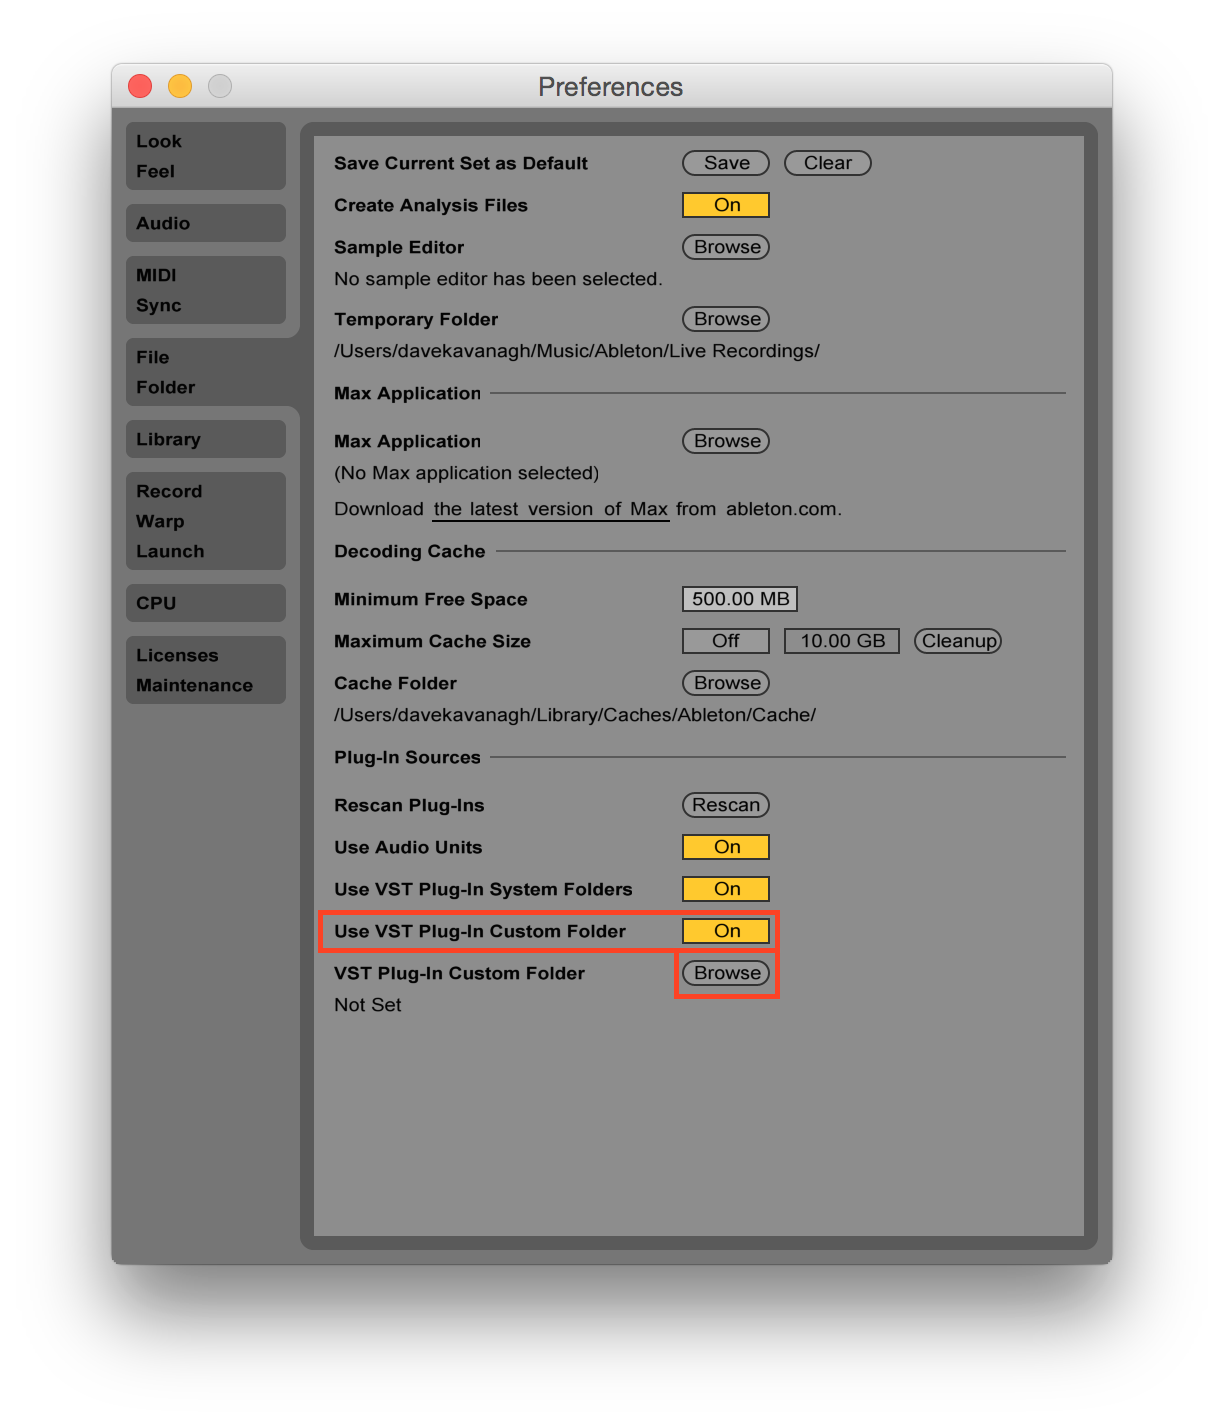 Ableton-VST-plugin-custom-folder-highlight